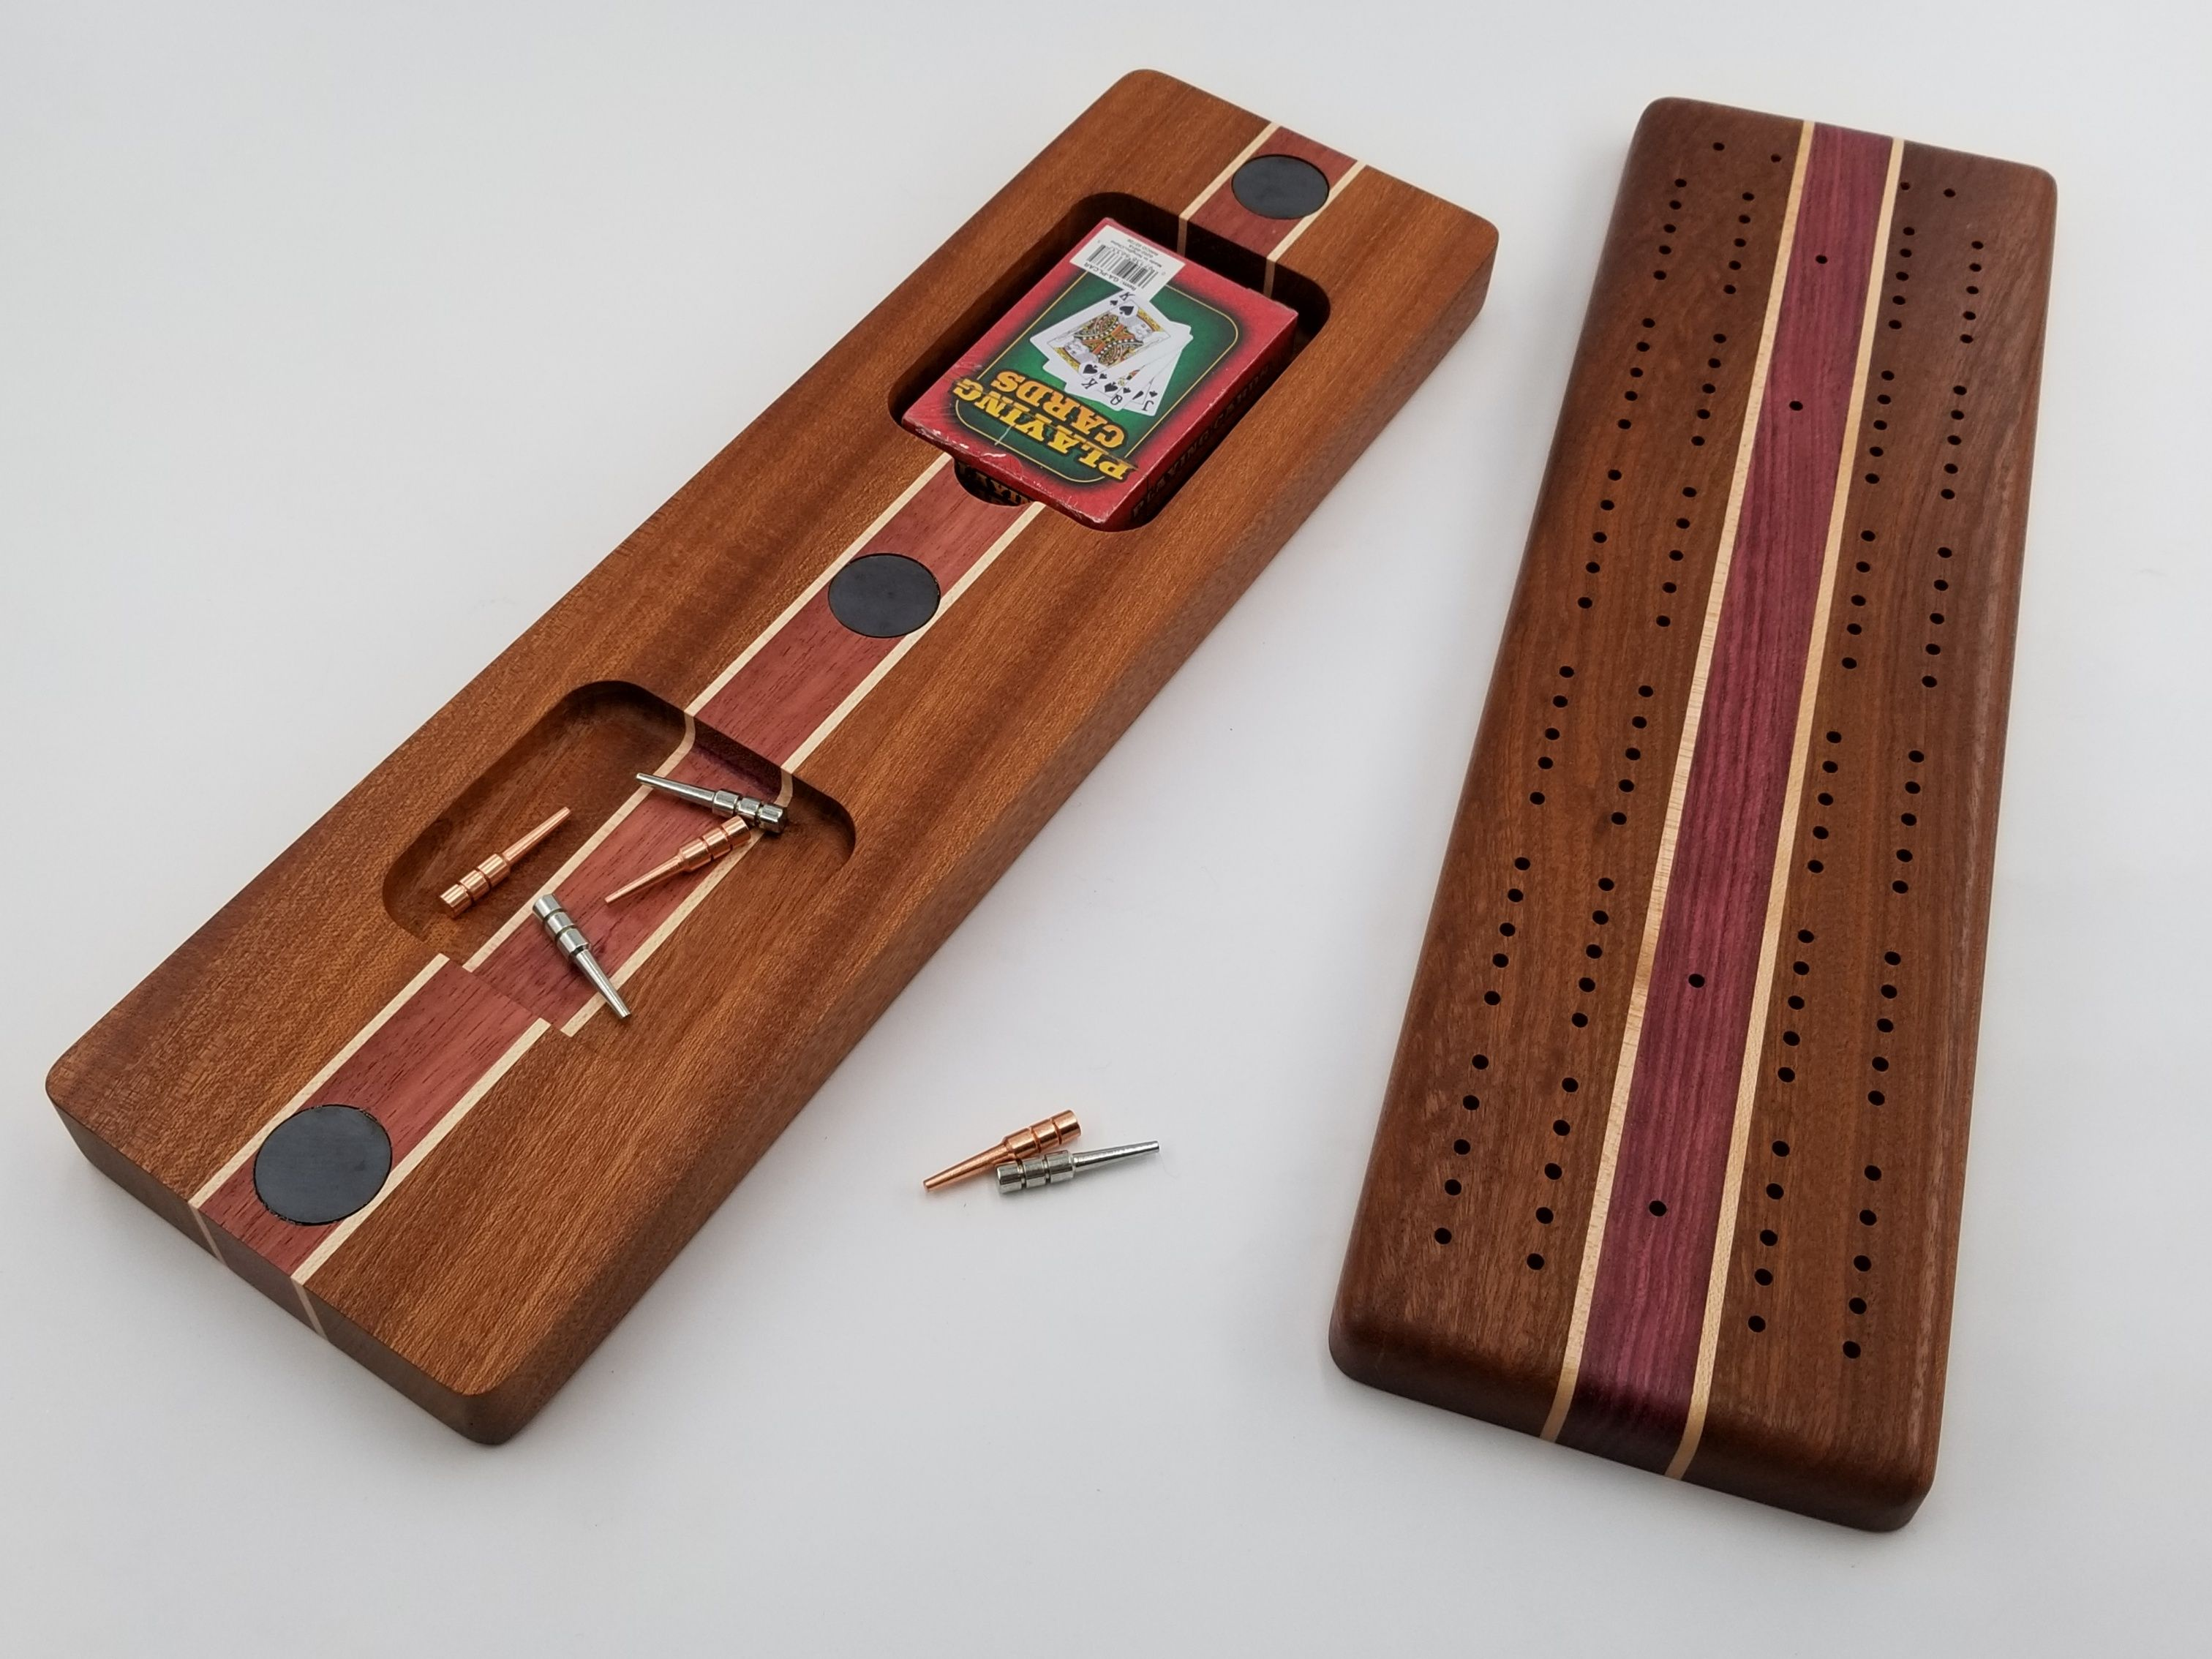 Wood Cribbage Board, Cribbage Board Set, Cribbage Game